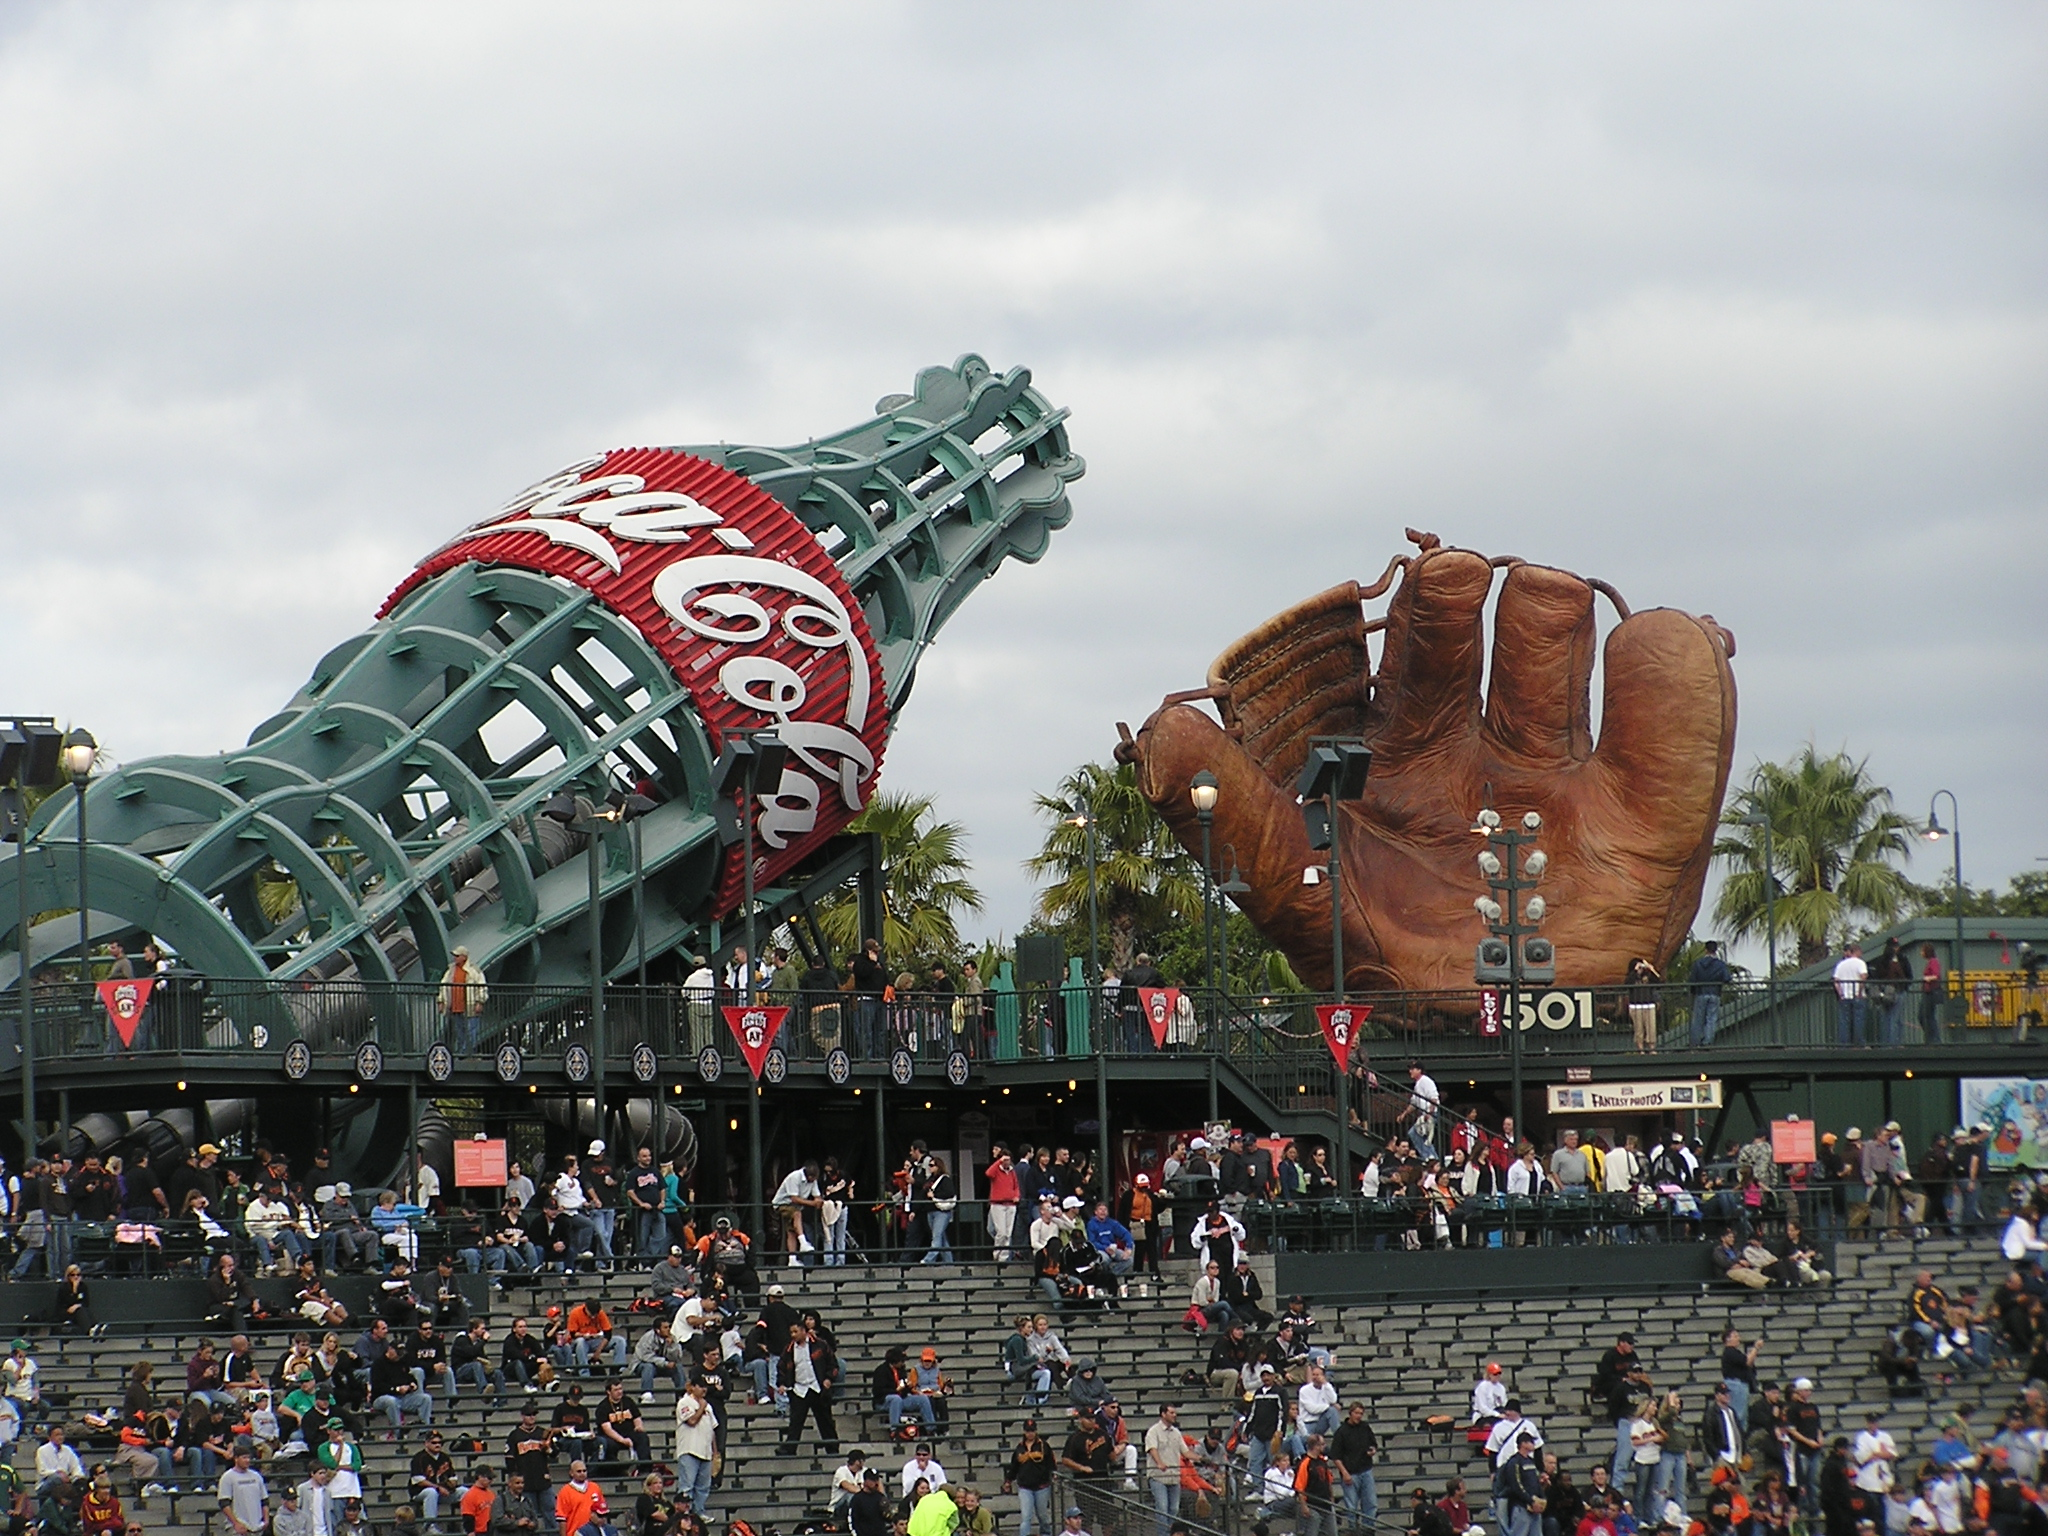 The Coke Bottle slide and Glove - AT&T Park